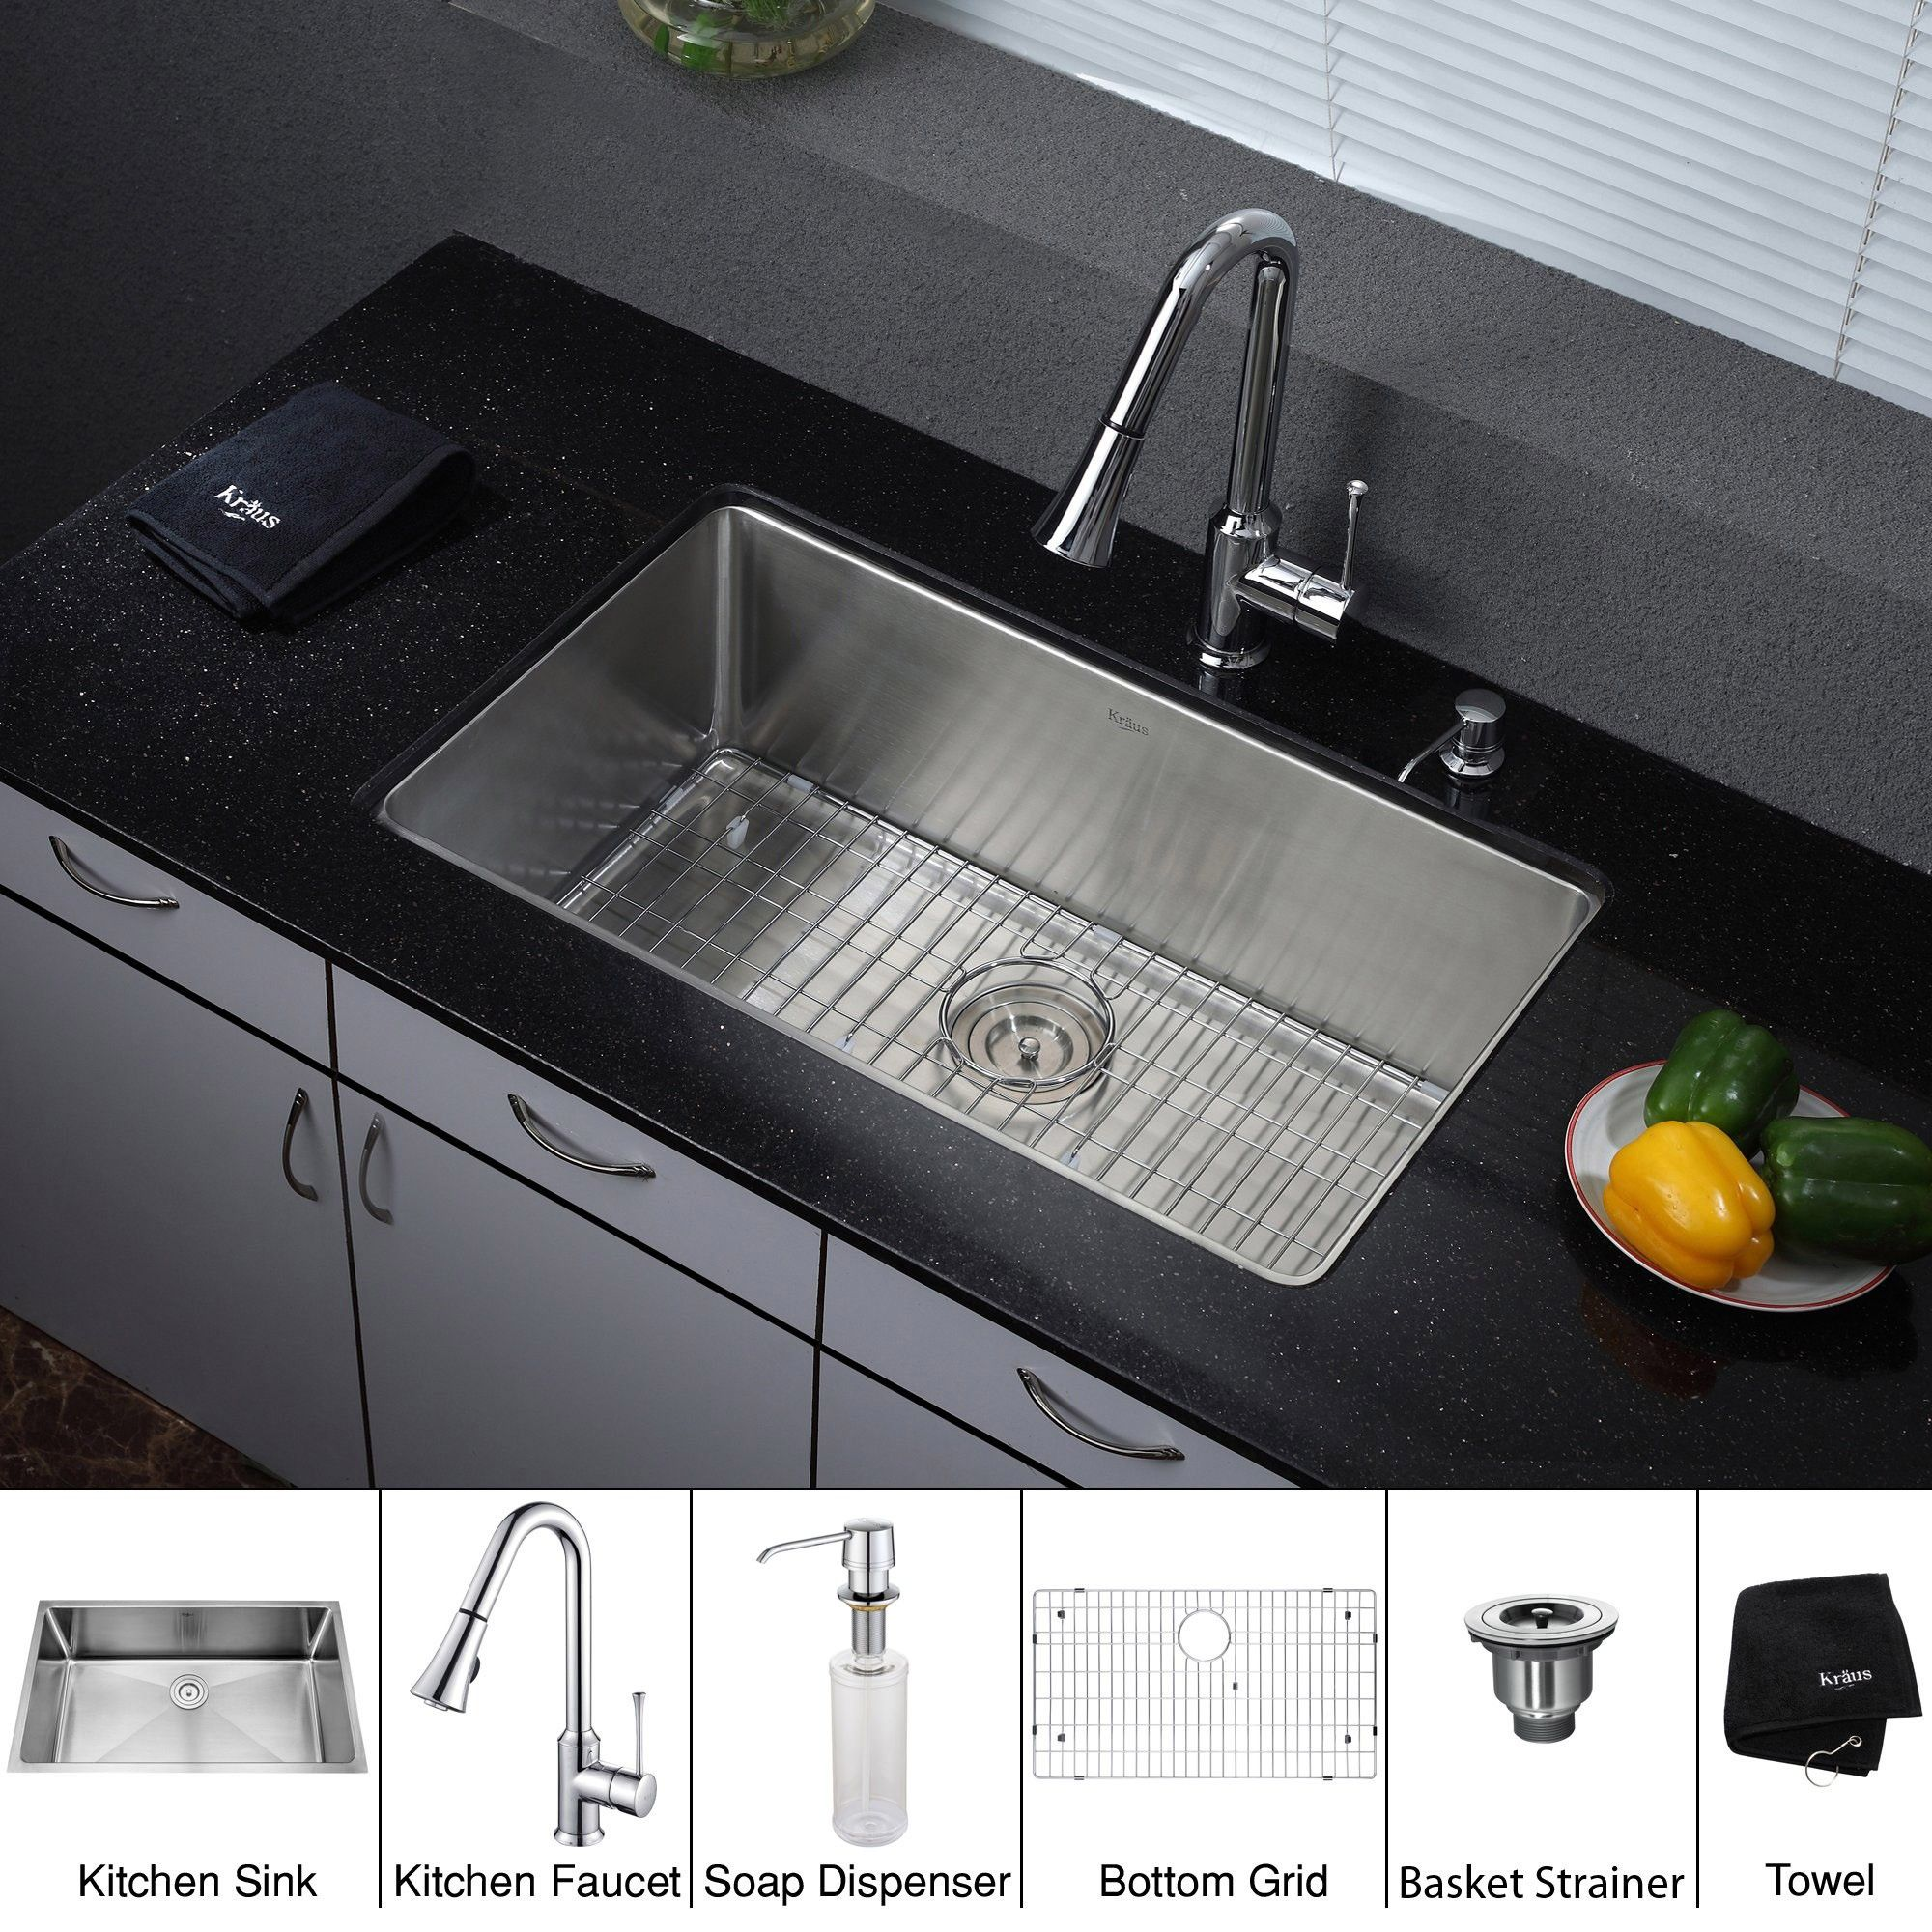 Merveilleux 32 Undermount Stainless Steel Sink   Diy Projects